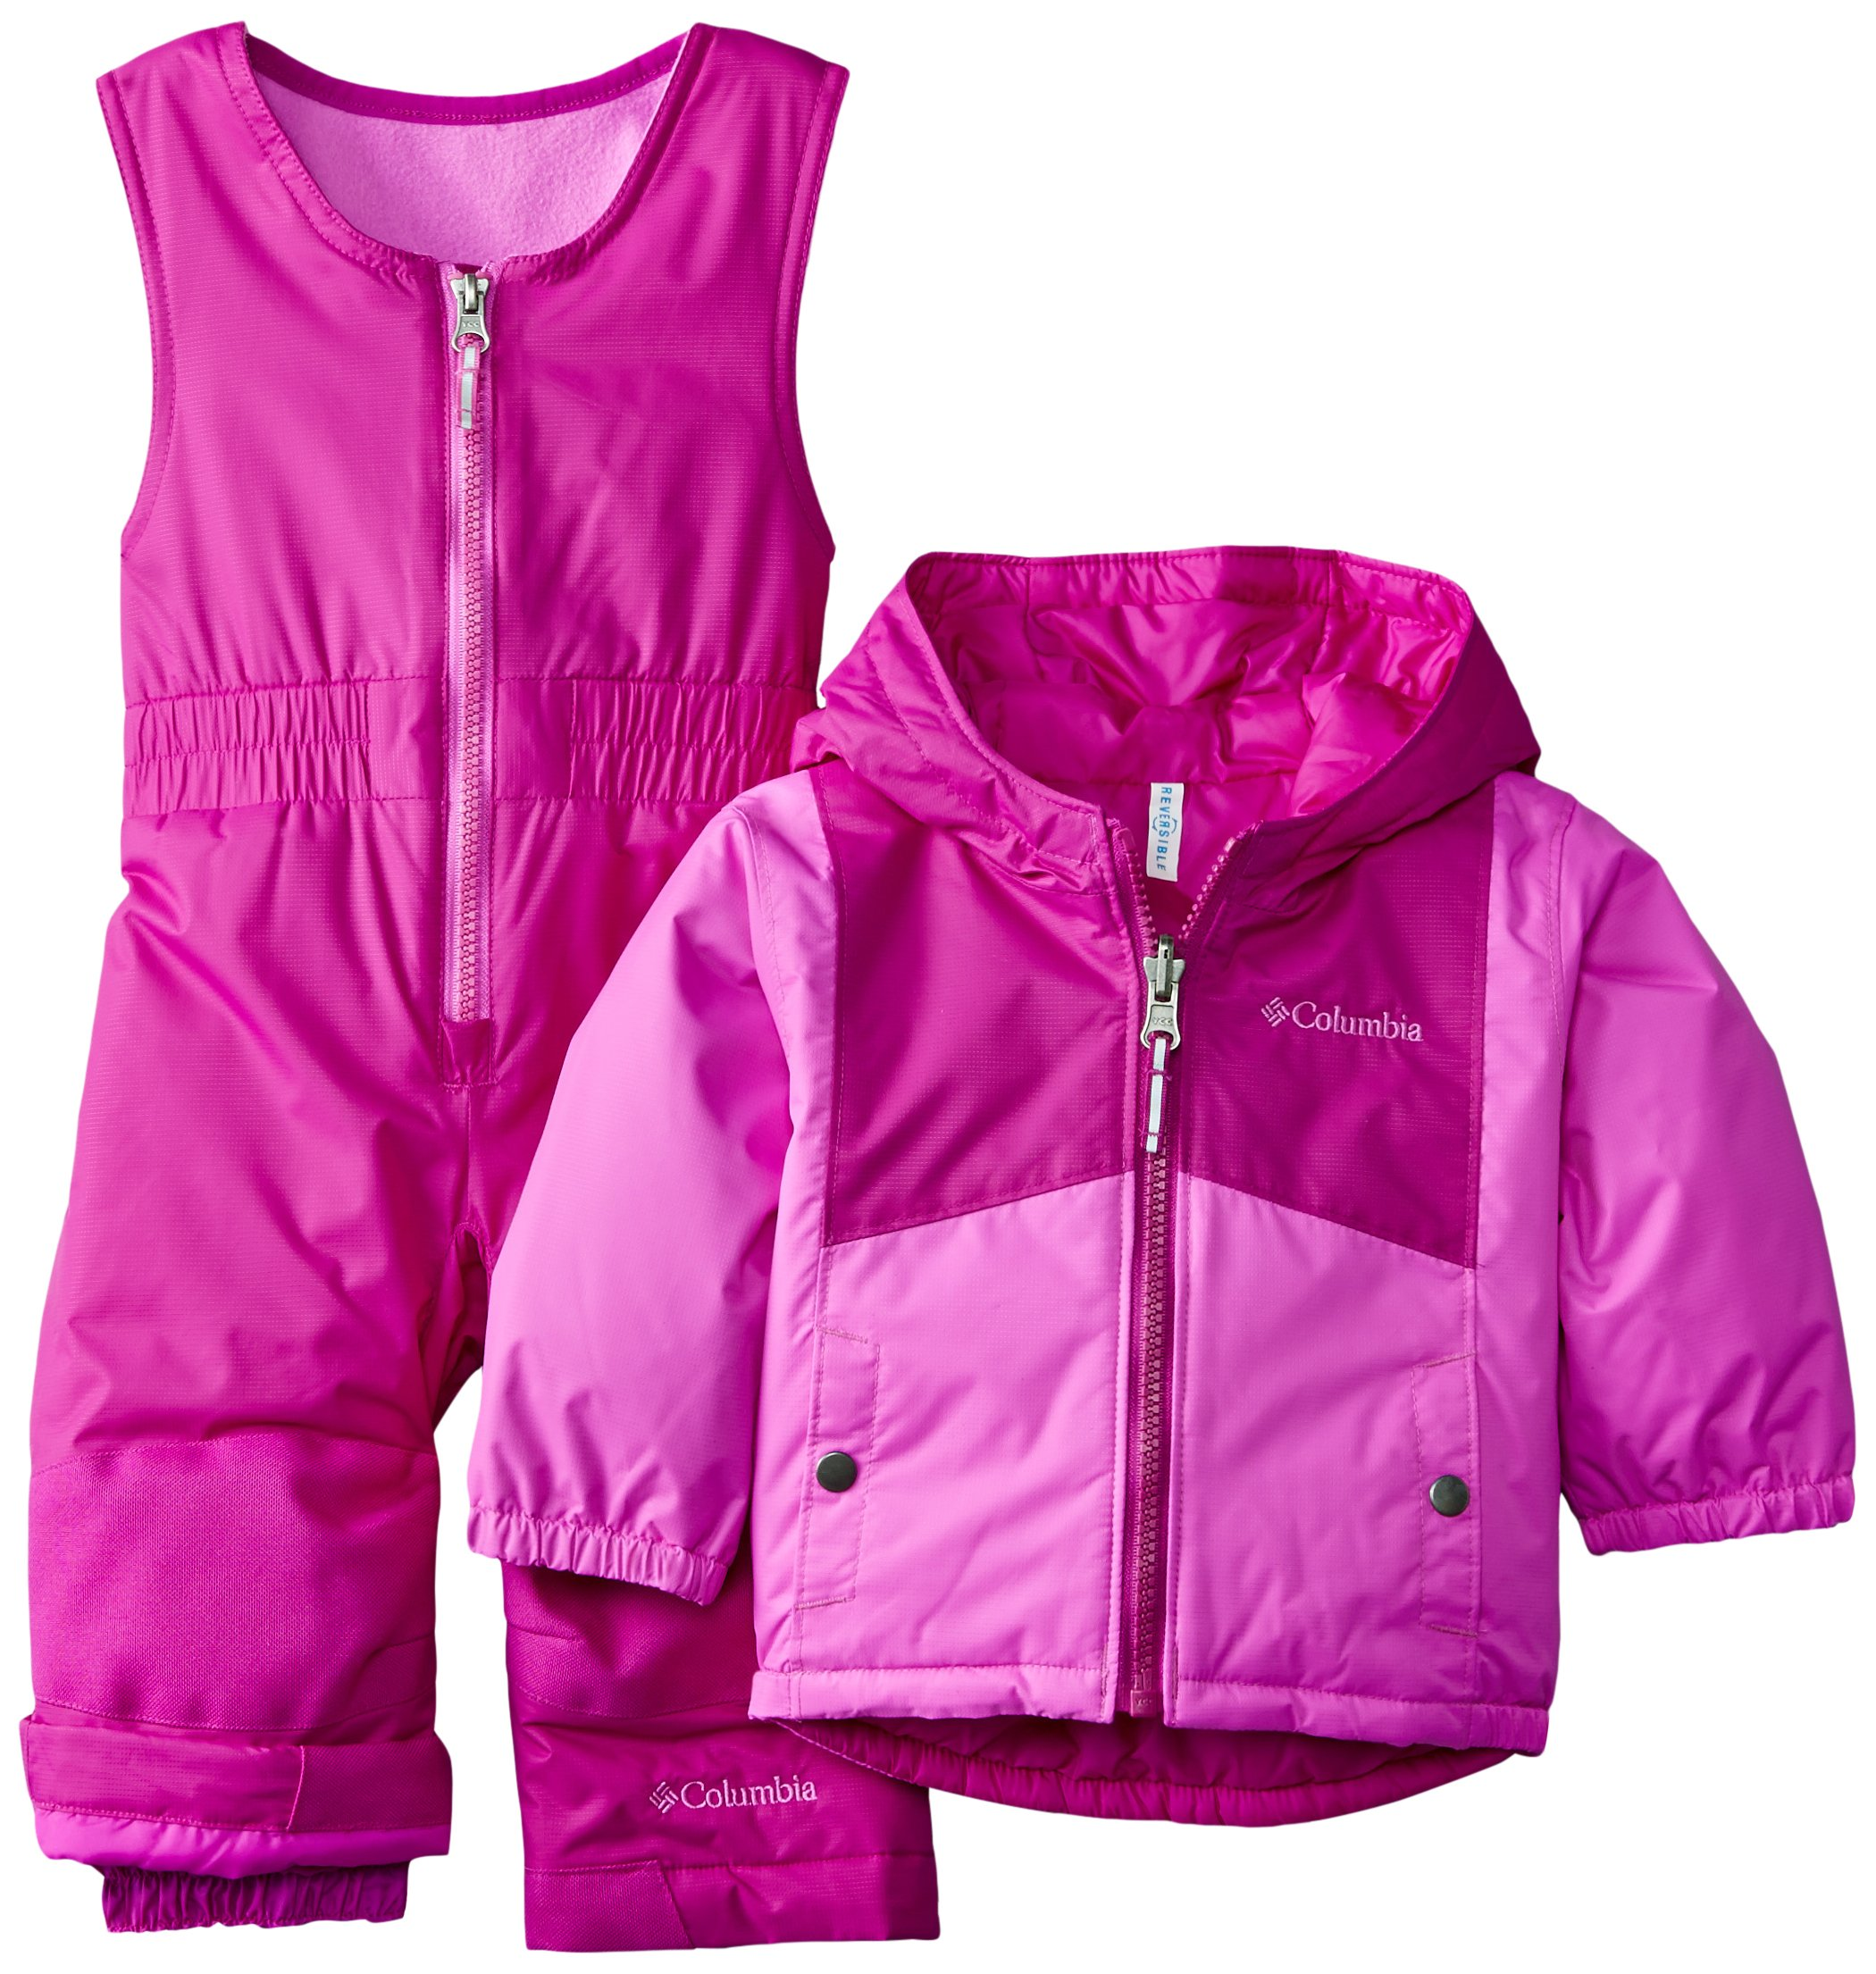 Columbia Baby Girls' Double Flake Reversible Set, Bright Plum/Foxglove, 12-18 Months by Columbia